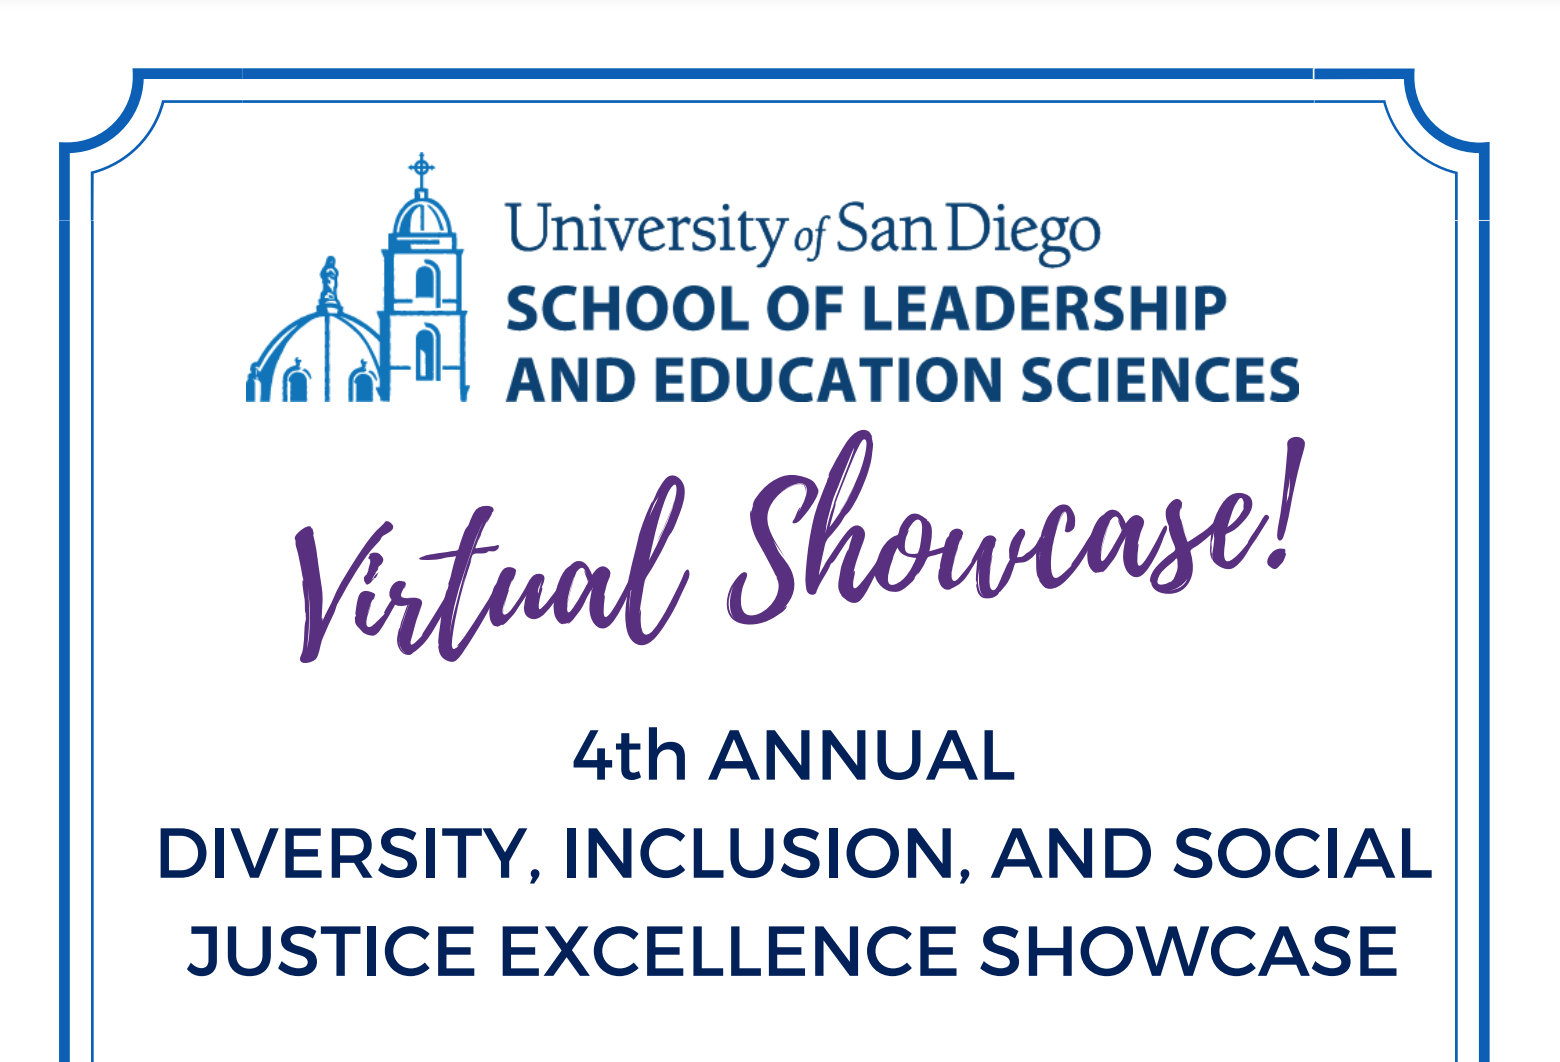 SOLES 4th Annual Diversity, Inclusion, Social Justice Excellence Showcase